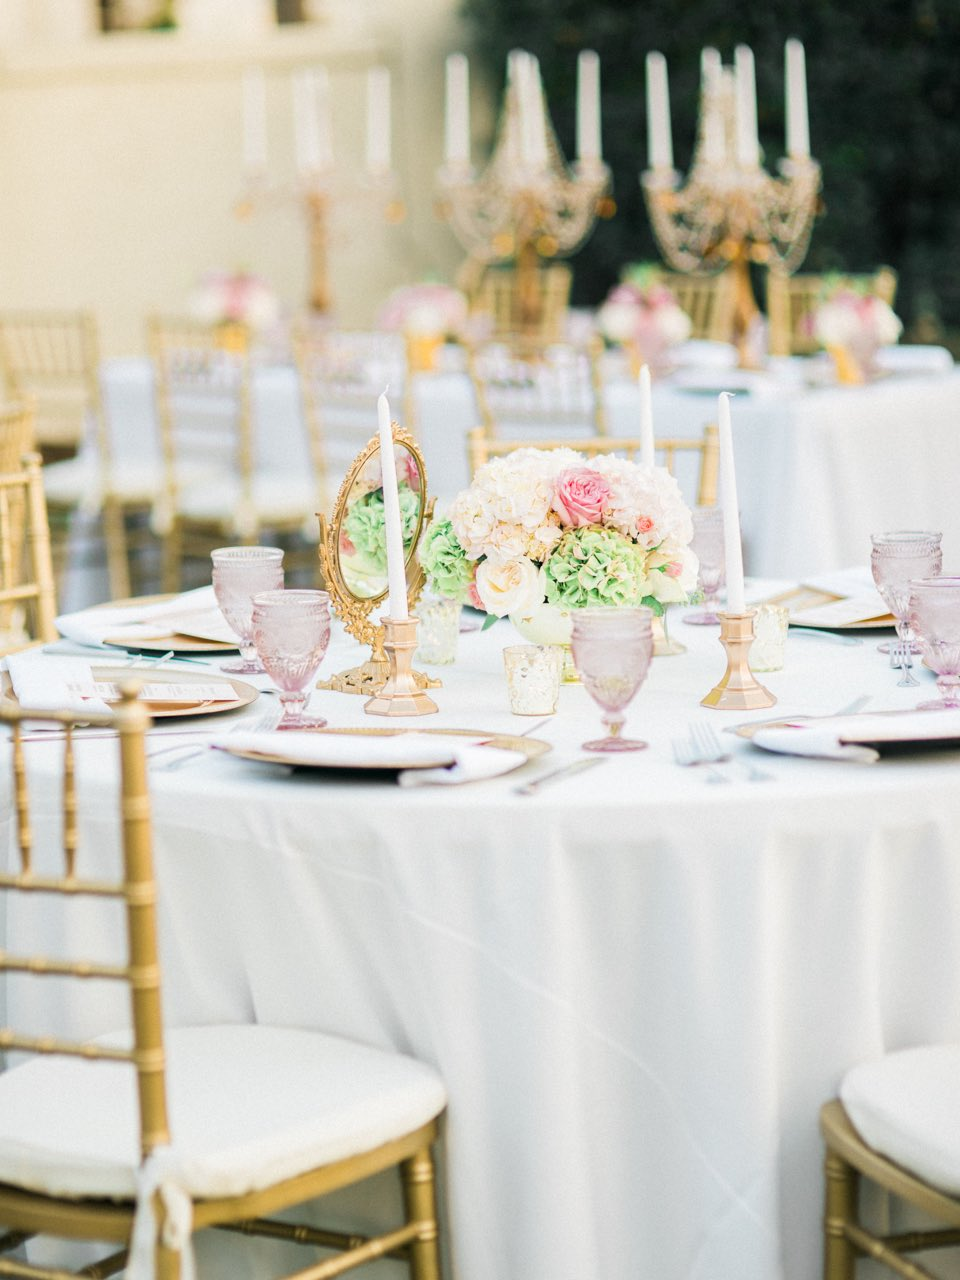 This pretty pink wedding is so cute!